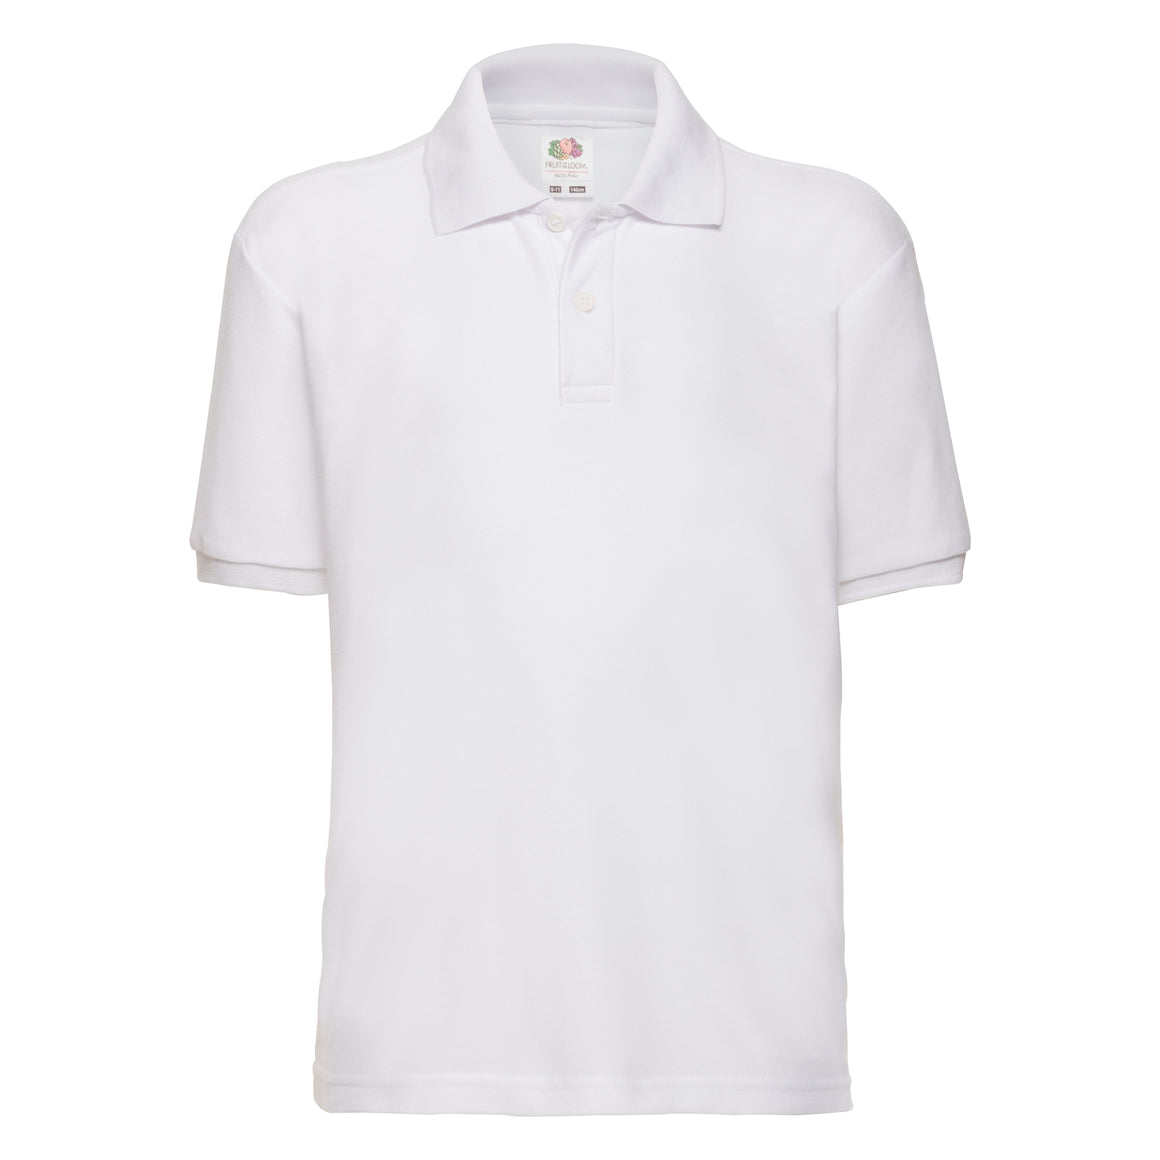 Yeadon Westfield Junior School Polo Shirt (Without Logo)